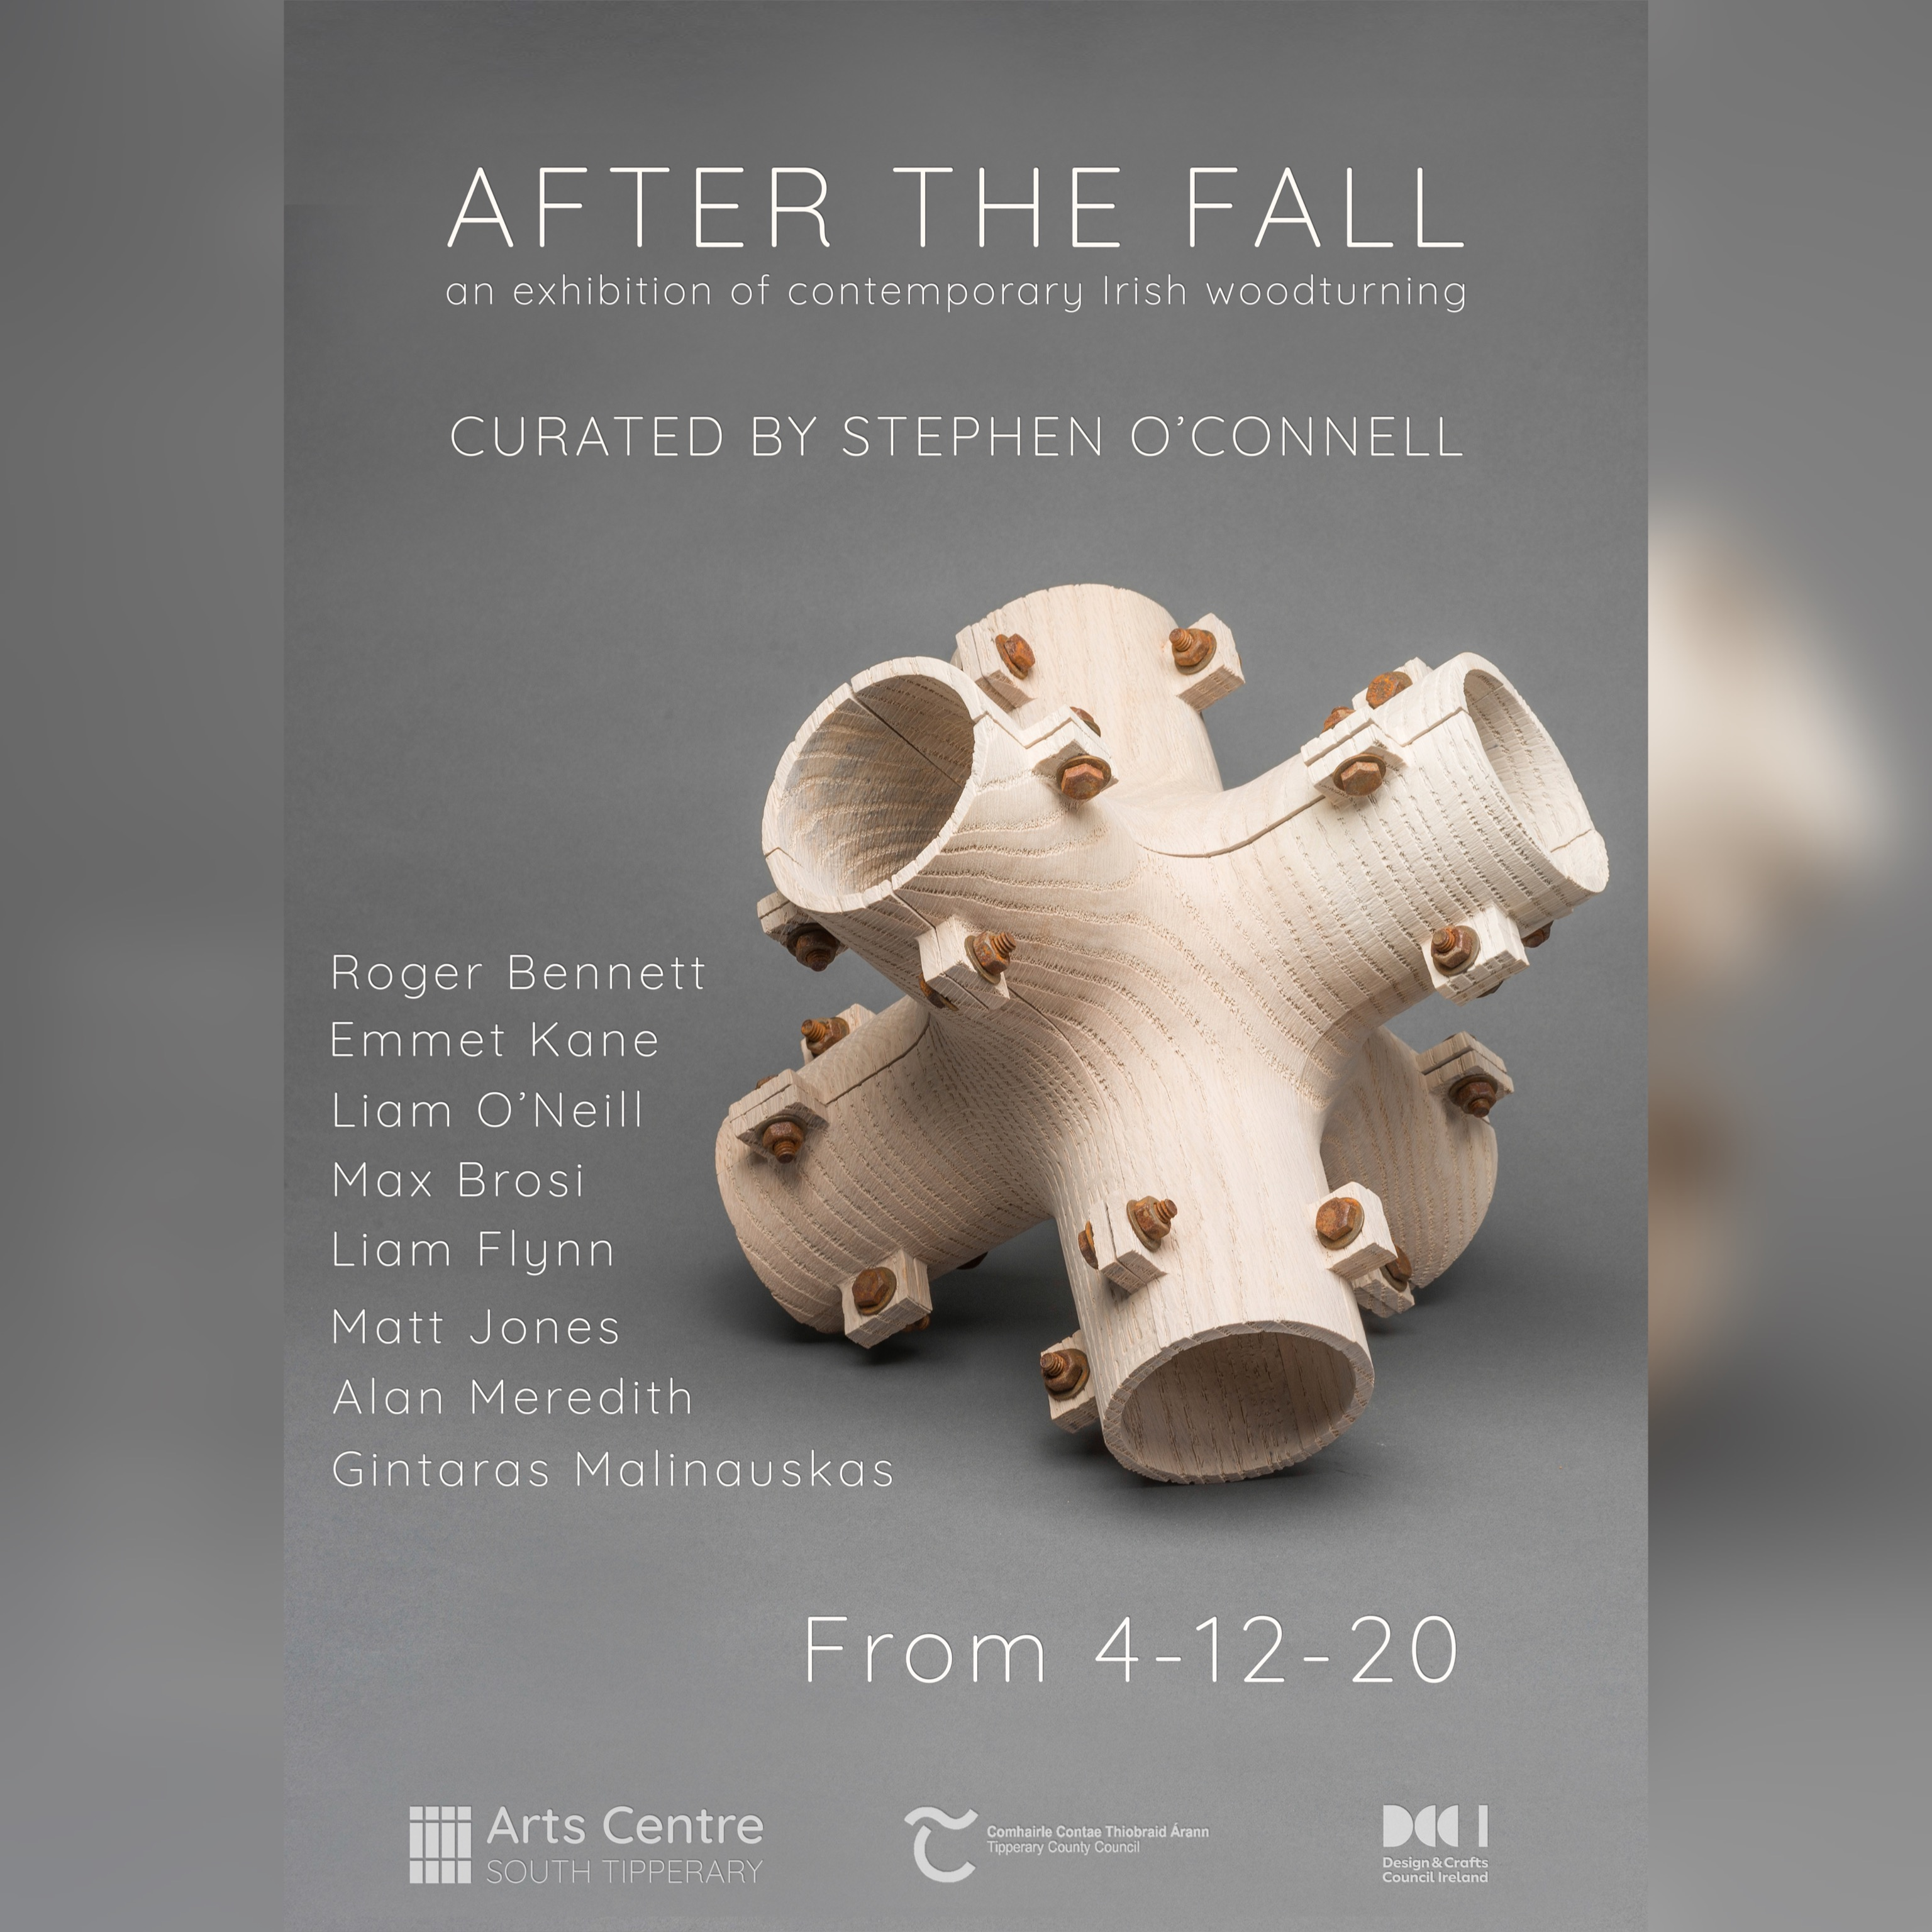 After the Fall – Curated by Stephen O'Connell